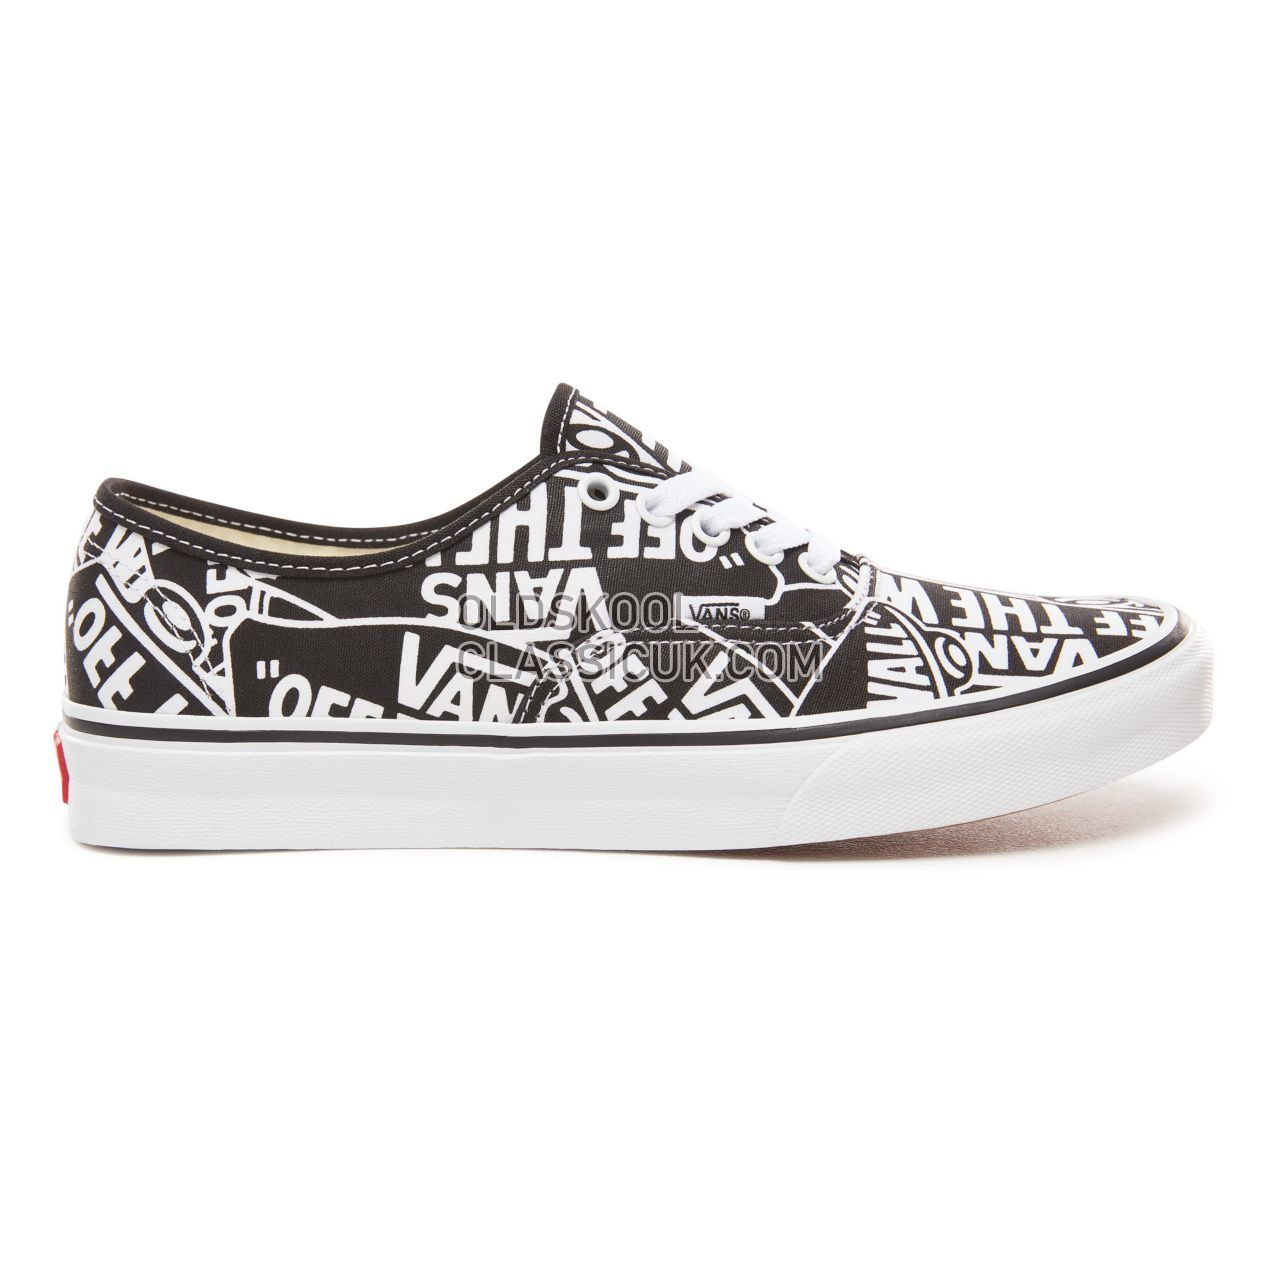 Vans Otw Repeat Authentic Sneakers Mens (Otw Repeat) Black/True White VN0A38EMUKK Shoes